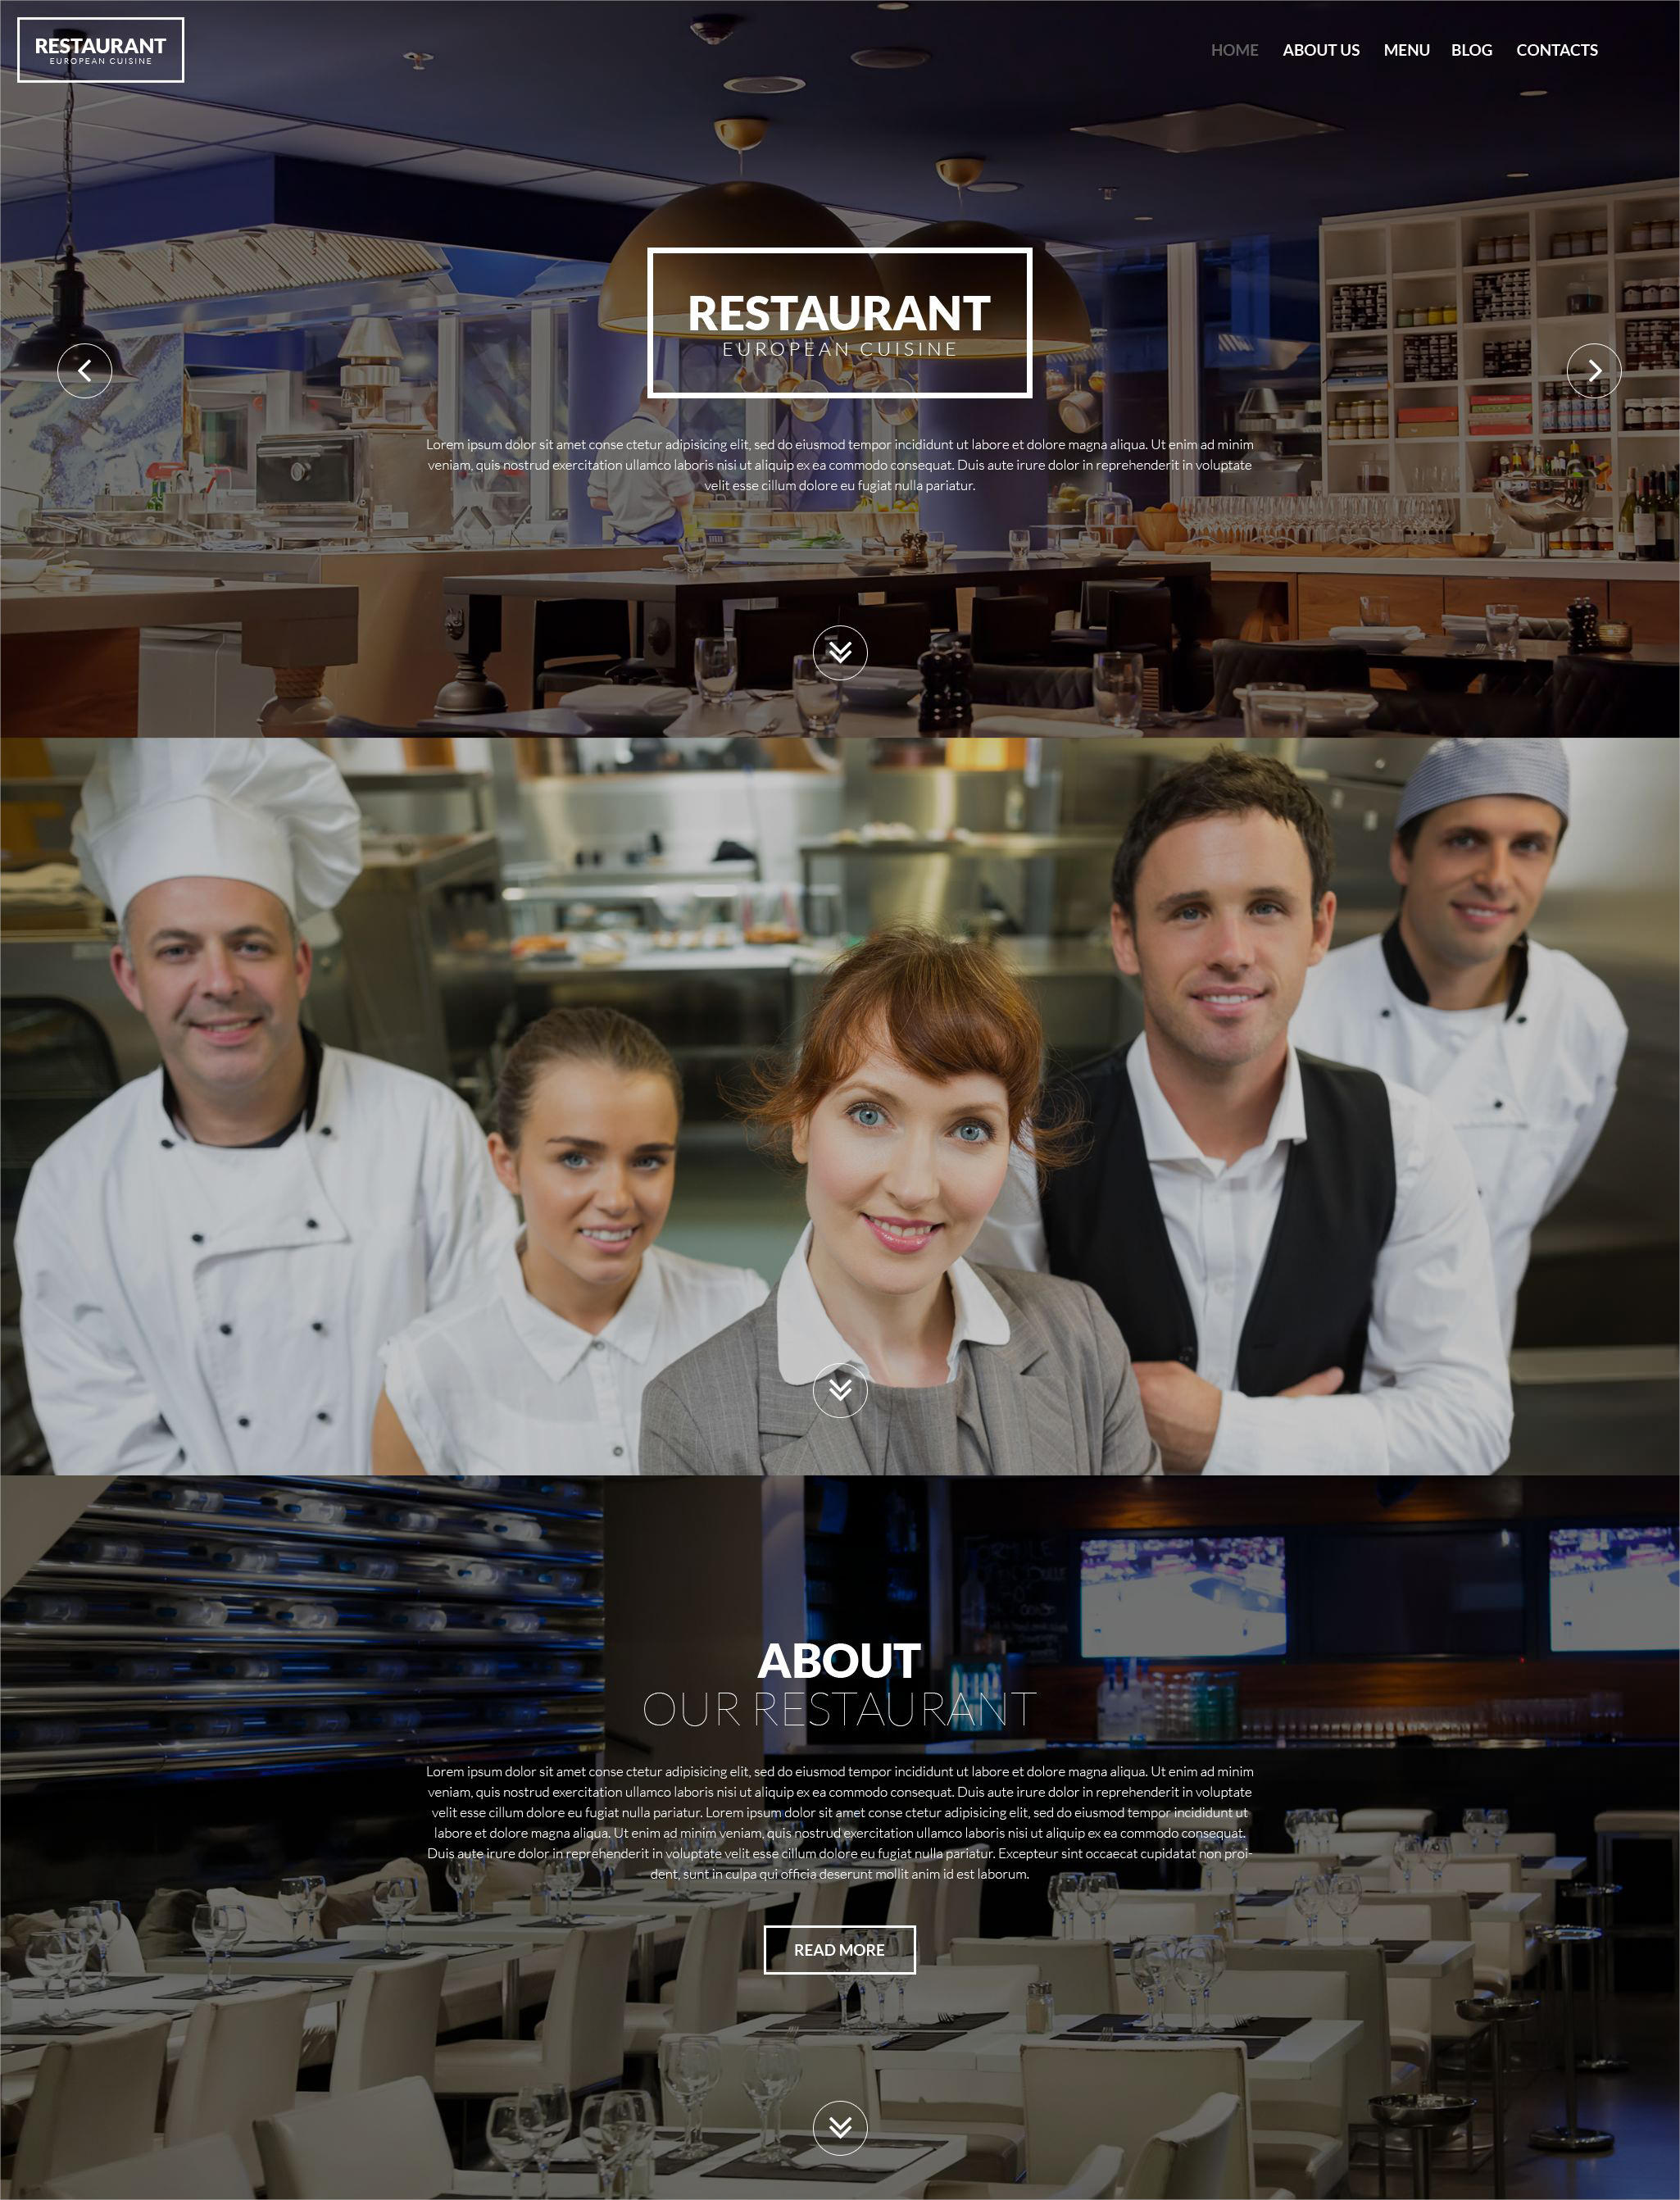 Restaurant European Cuisine WordPress Theme